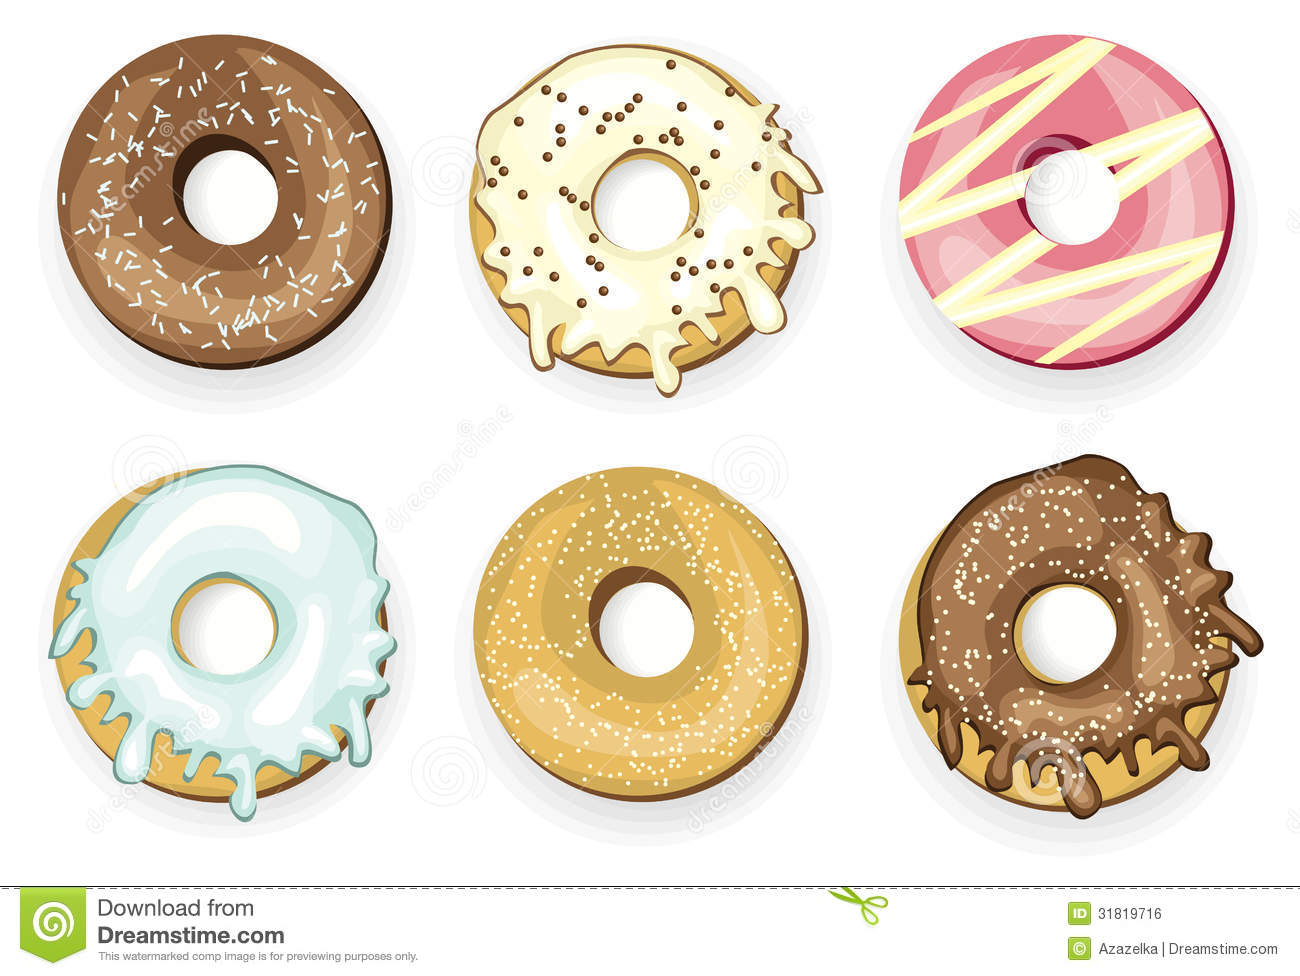 Donuts Royalty Free Stock Image - Image: 31819716